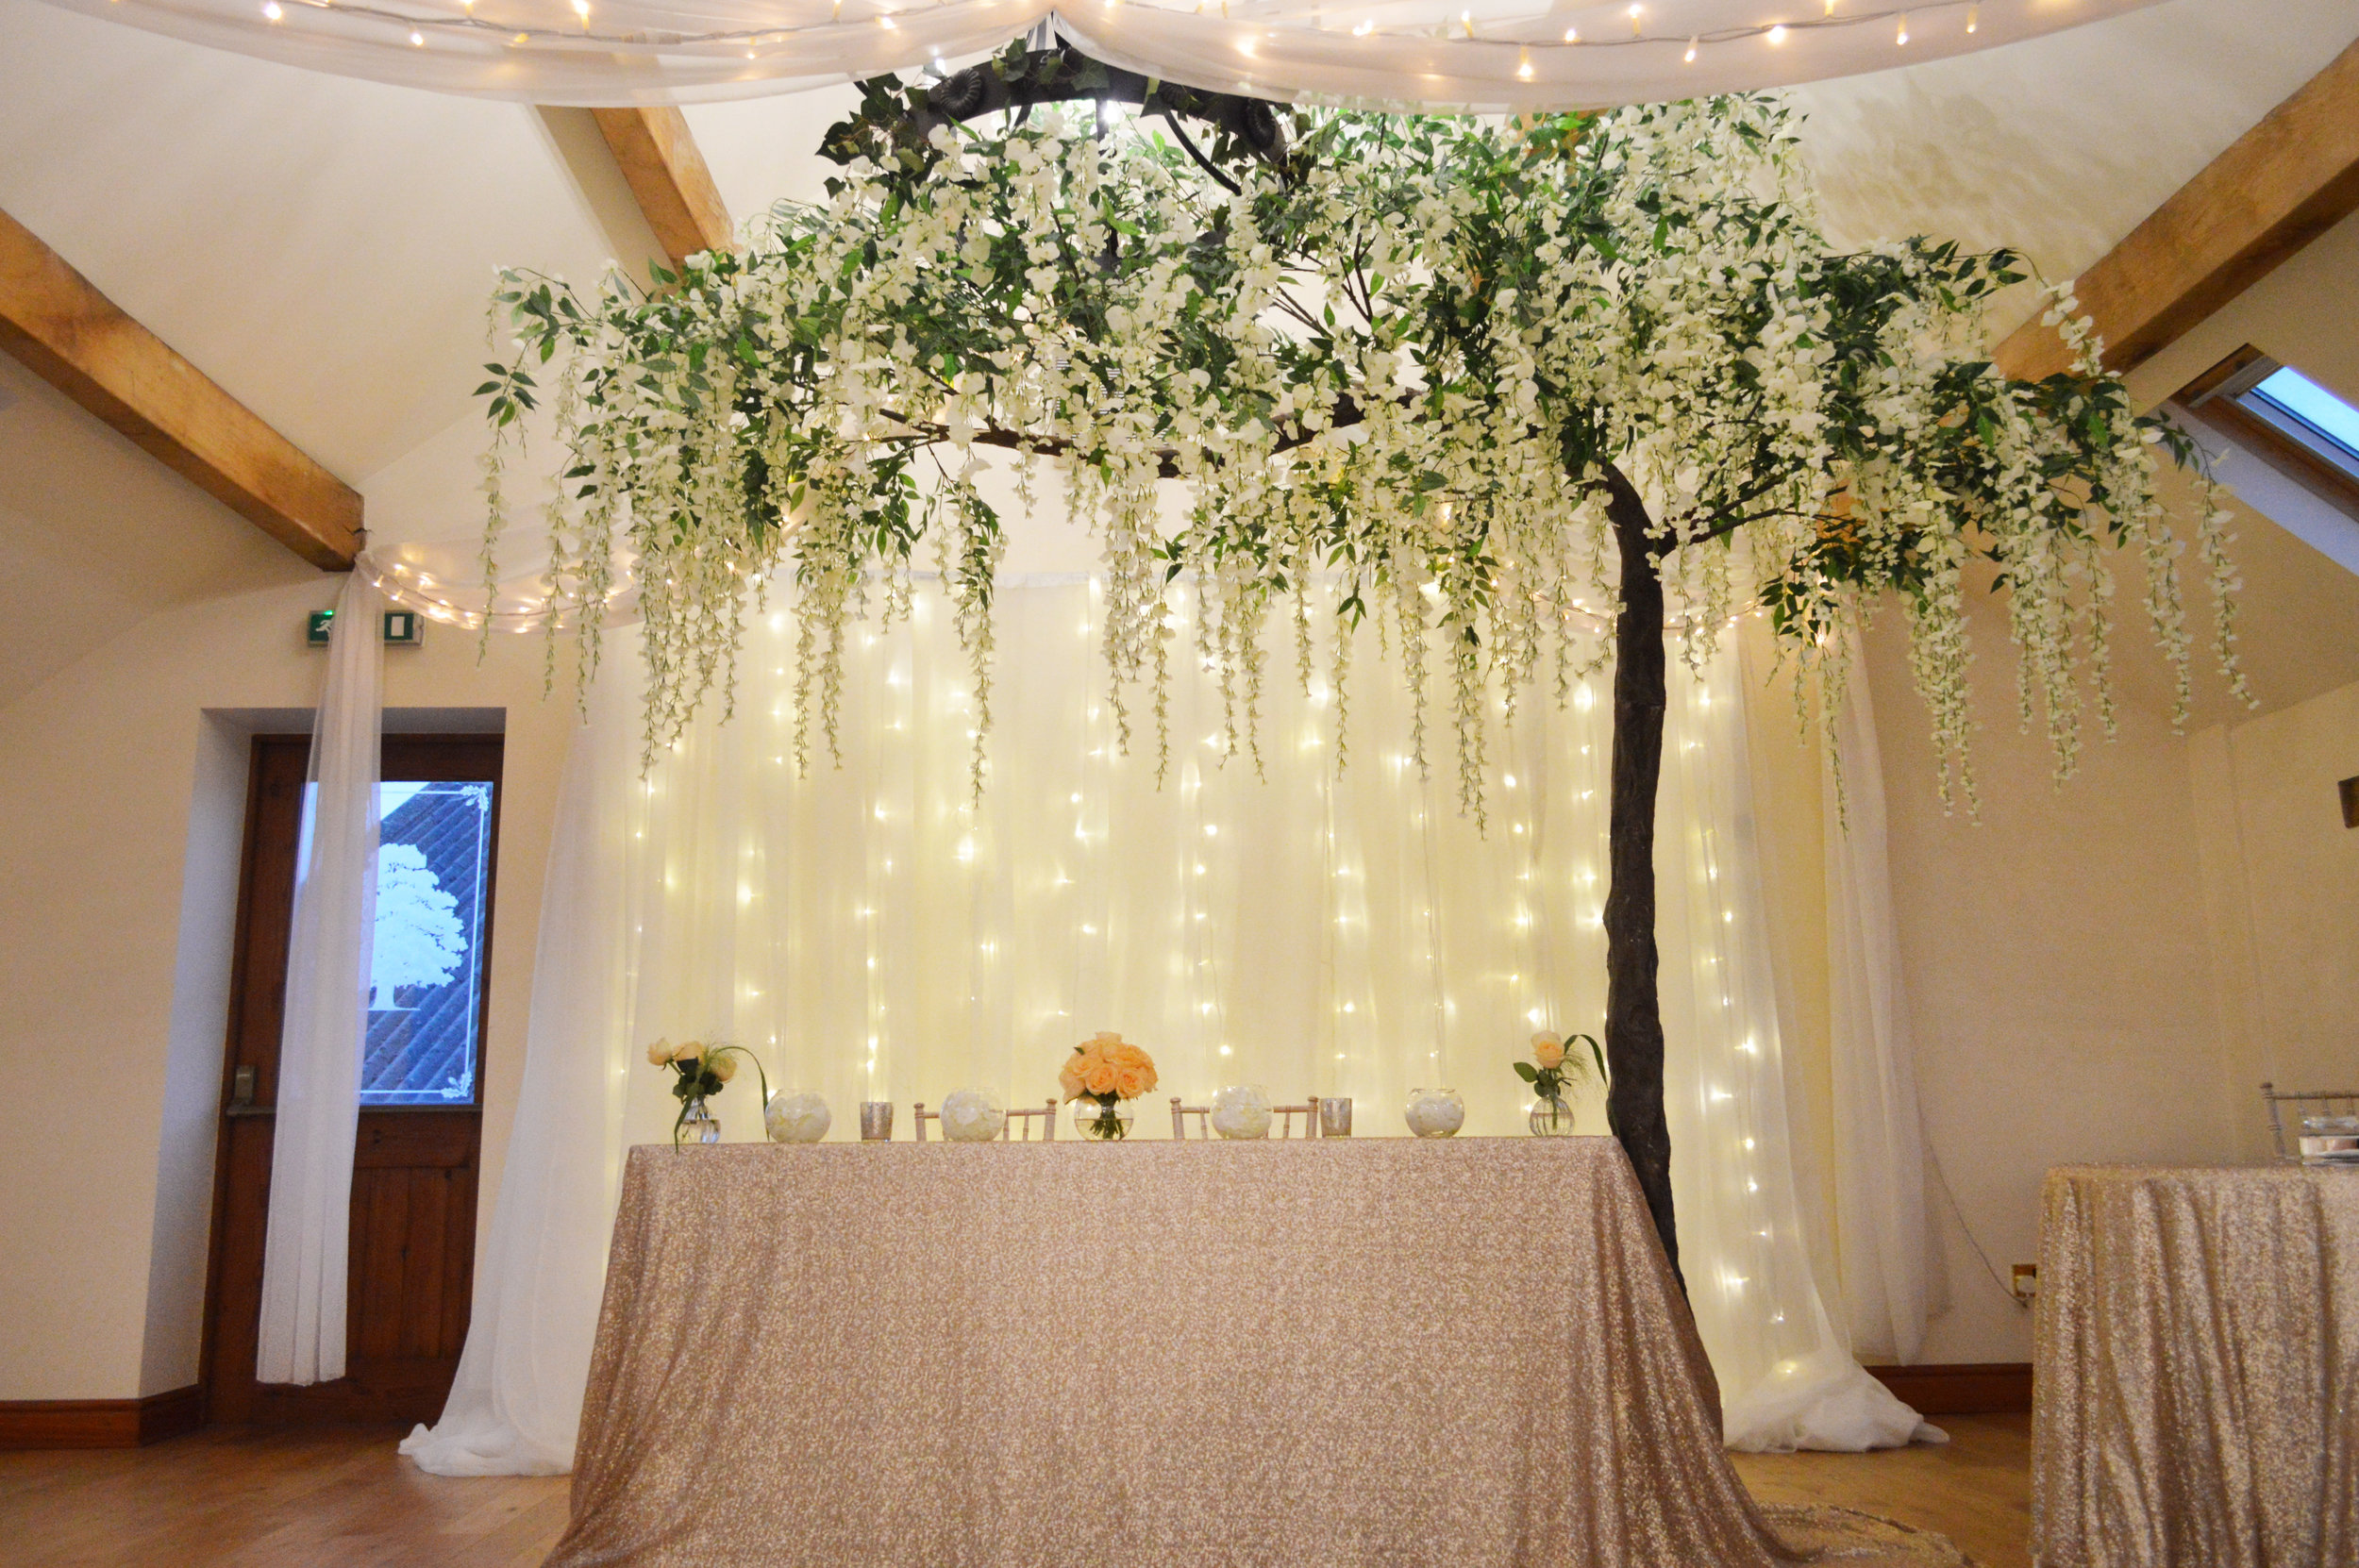 Wisteria hanging tree, registrar sequin table cloth and fairy light backdrop